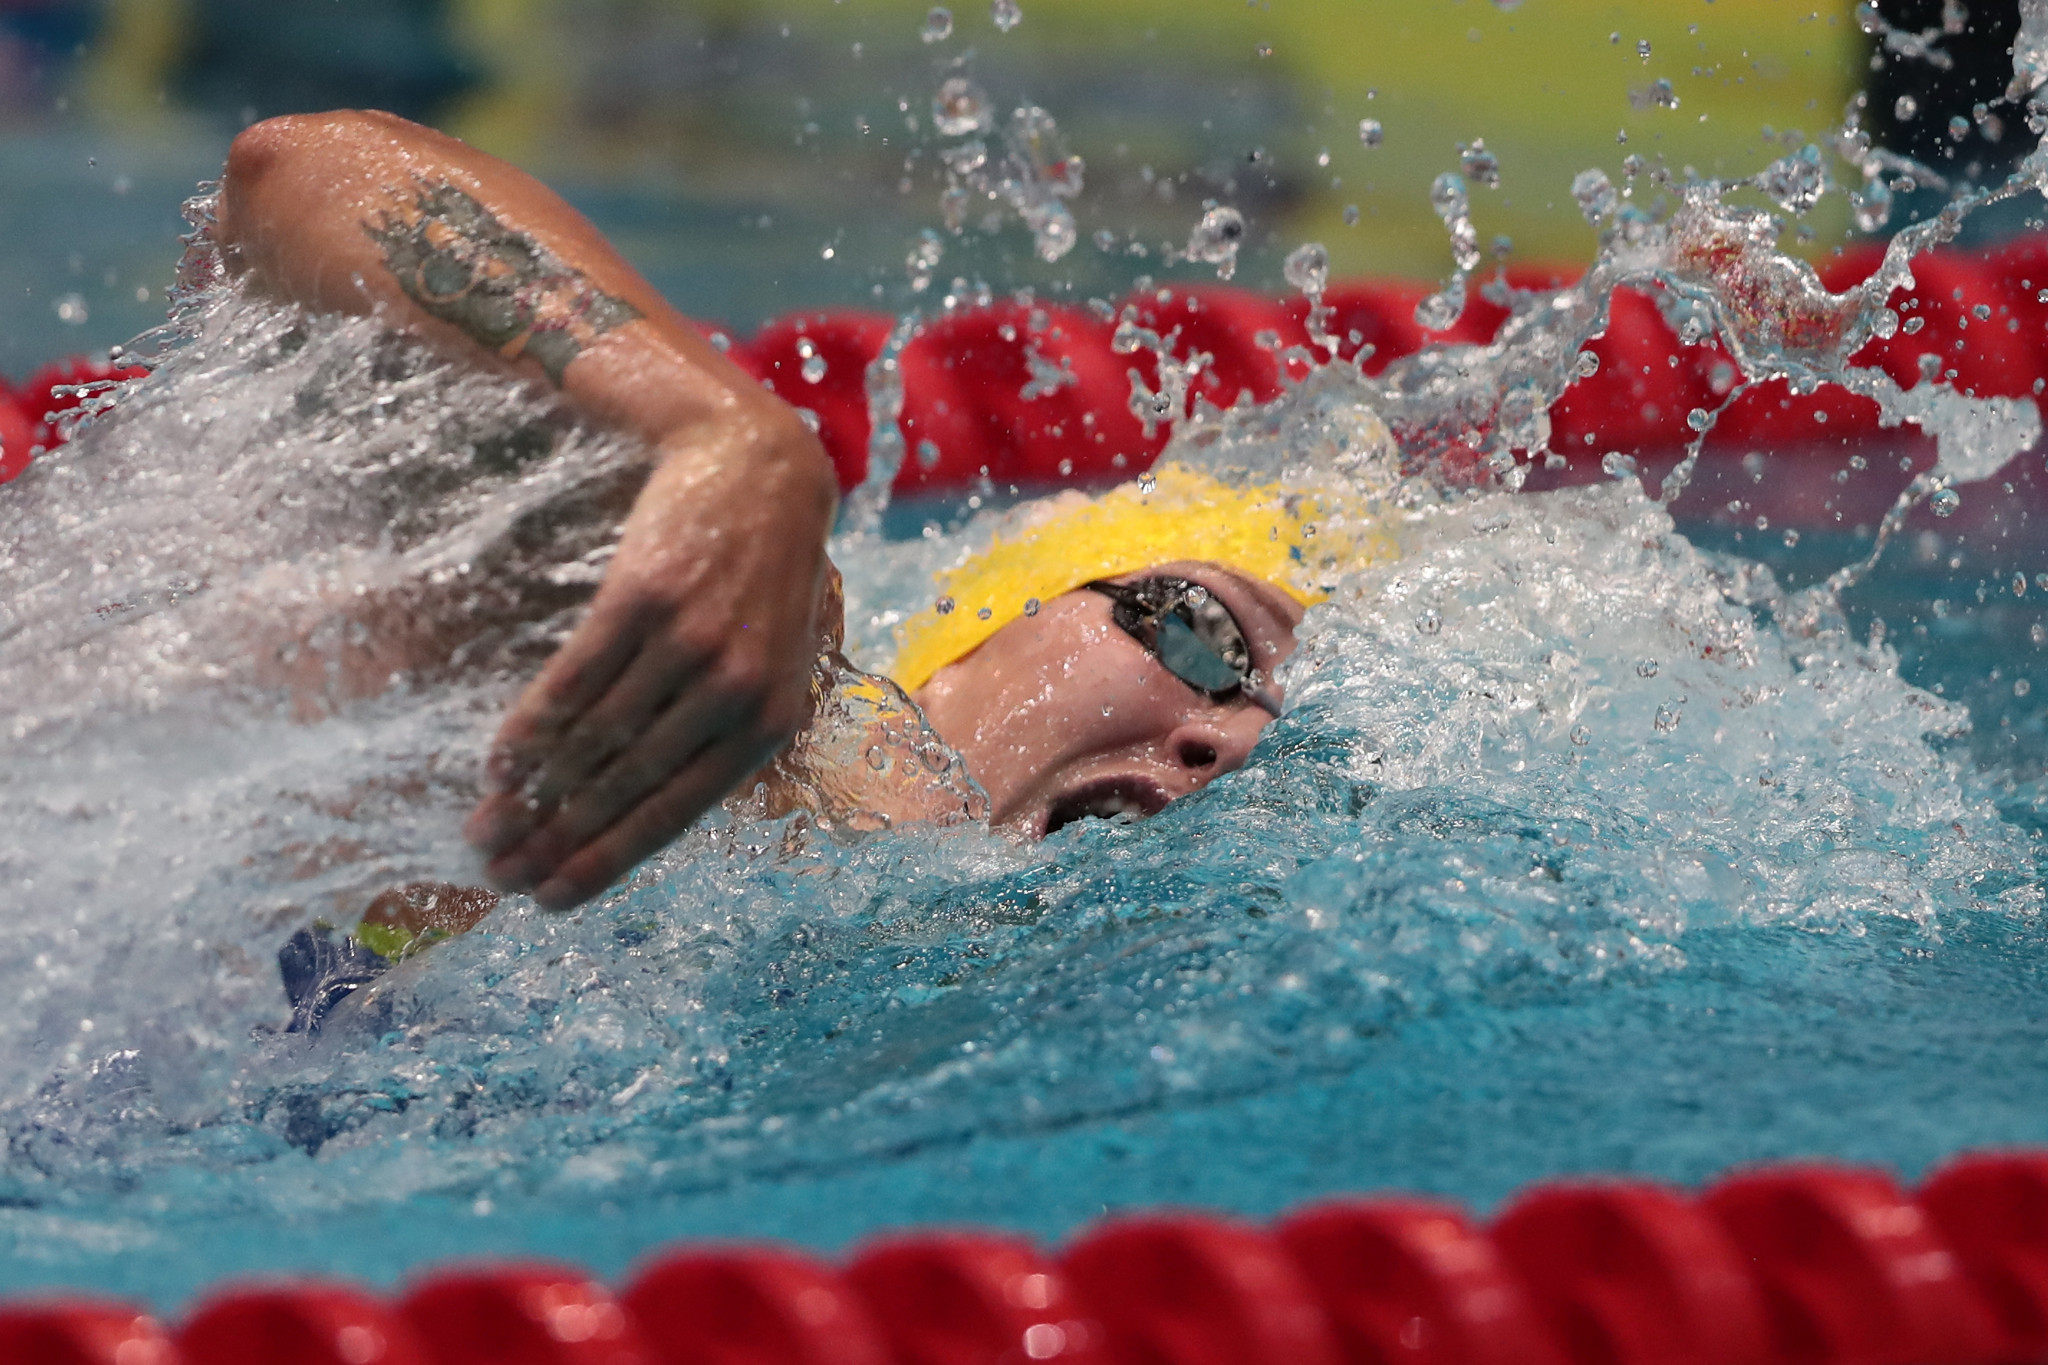 Sarah Sjöström of Sweden, winner of three gold medals at the World Championships in Budapest in July, will be aiming to stretch her lead in the overall women's standings at the FINA World Cup in Beijing ©Getty Images